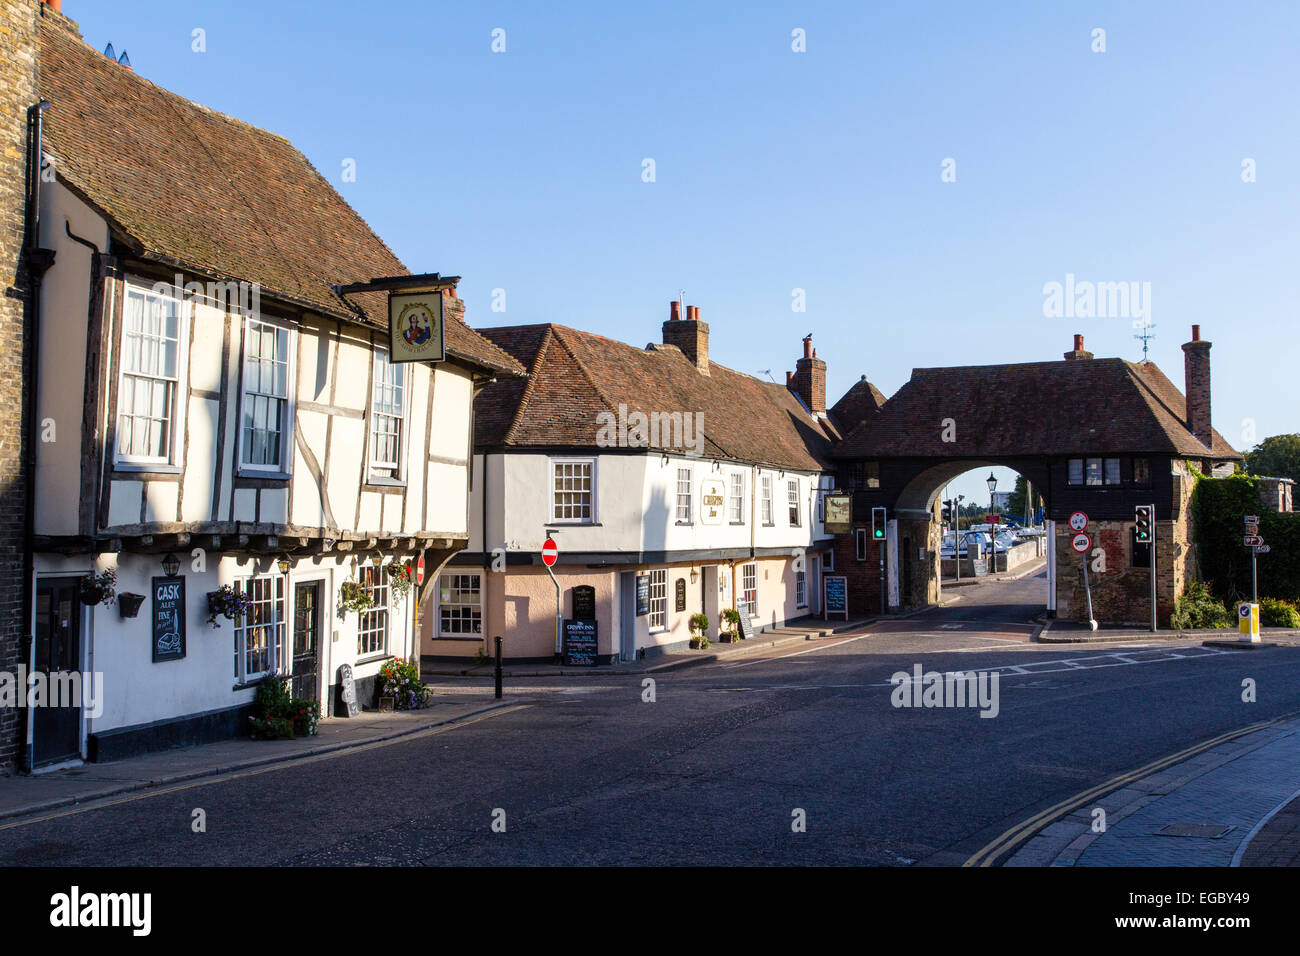 England, Sandwich. The Admiral Owen pub and Crispin pub, 15th century buildings with the Barbican, Davis Gate. - Stock Image